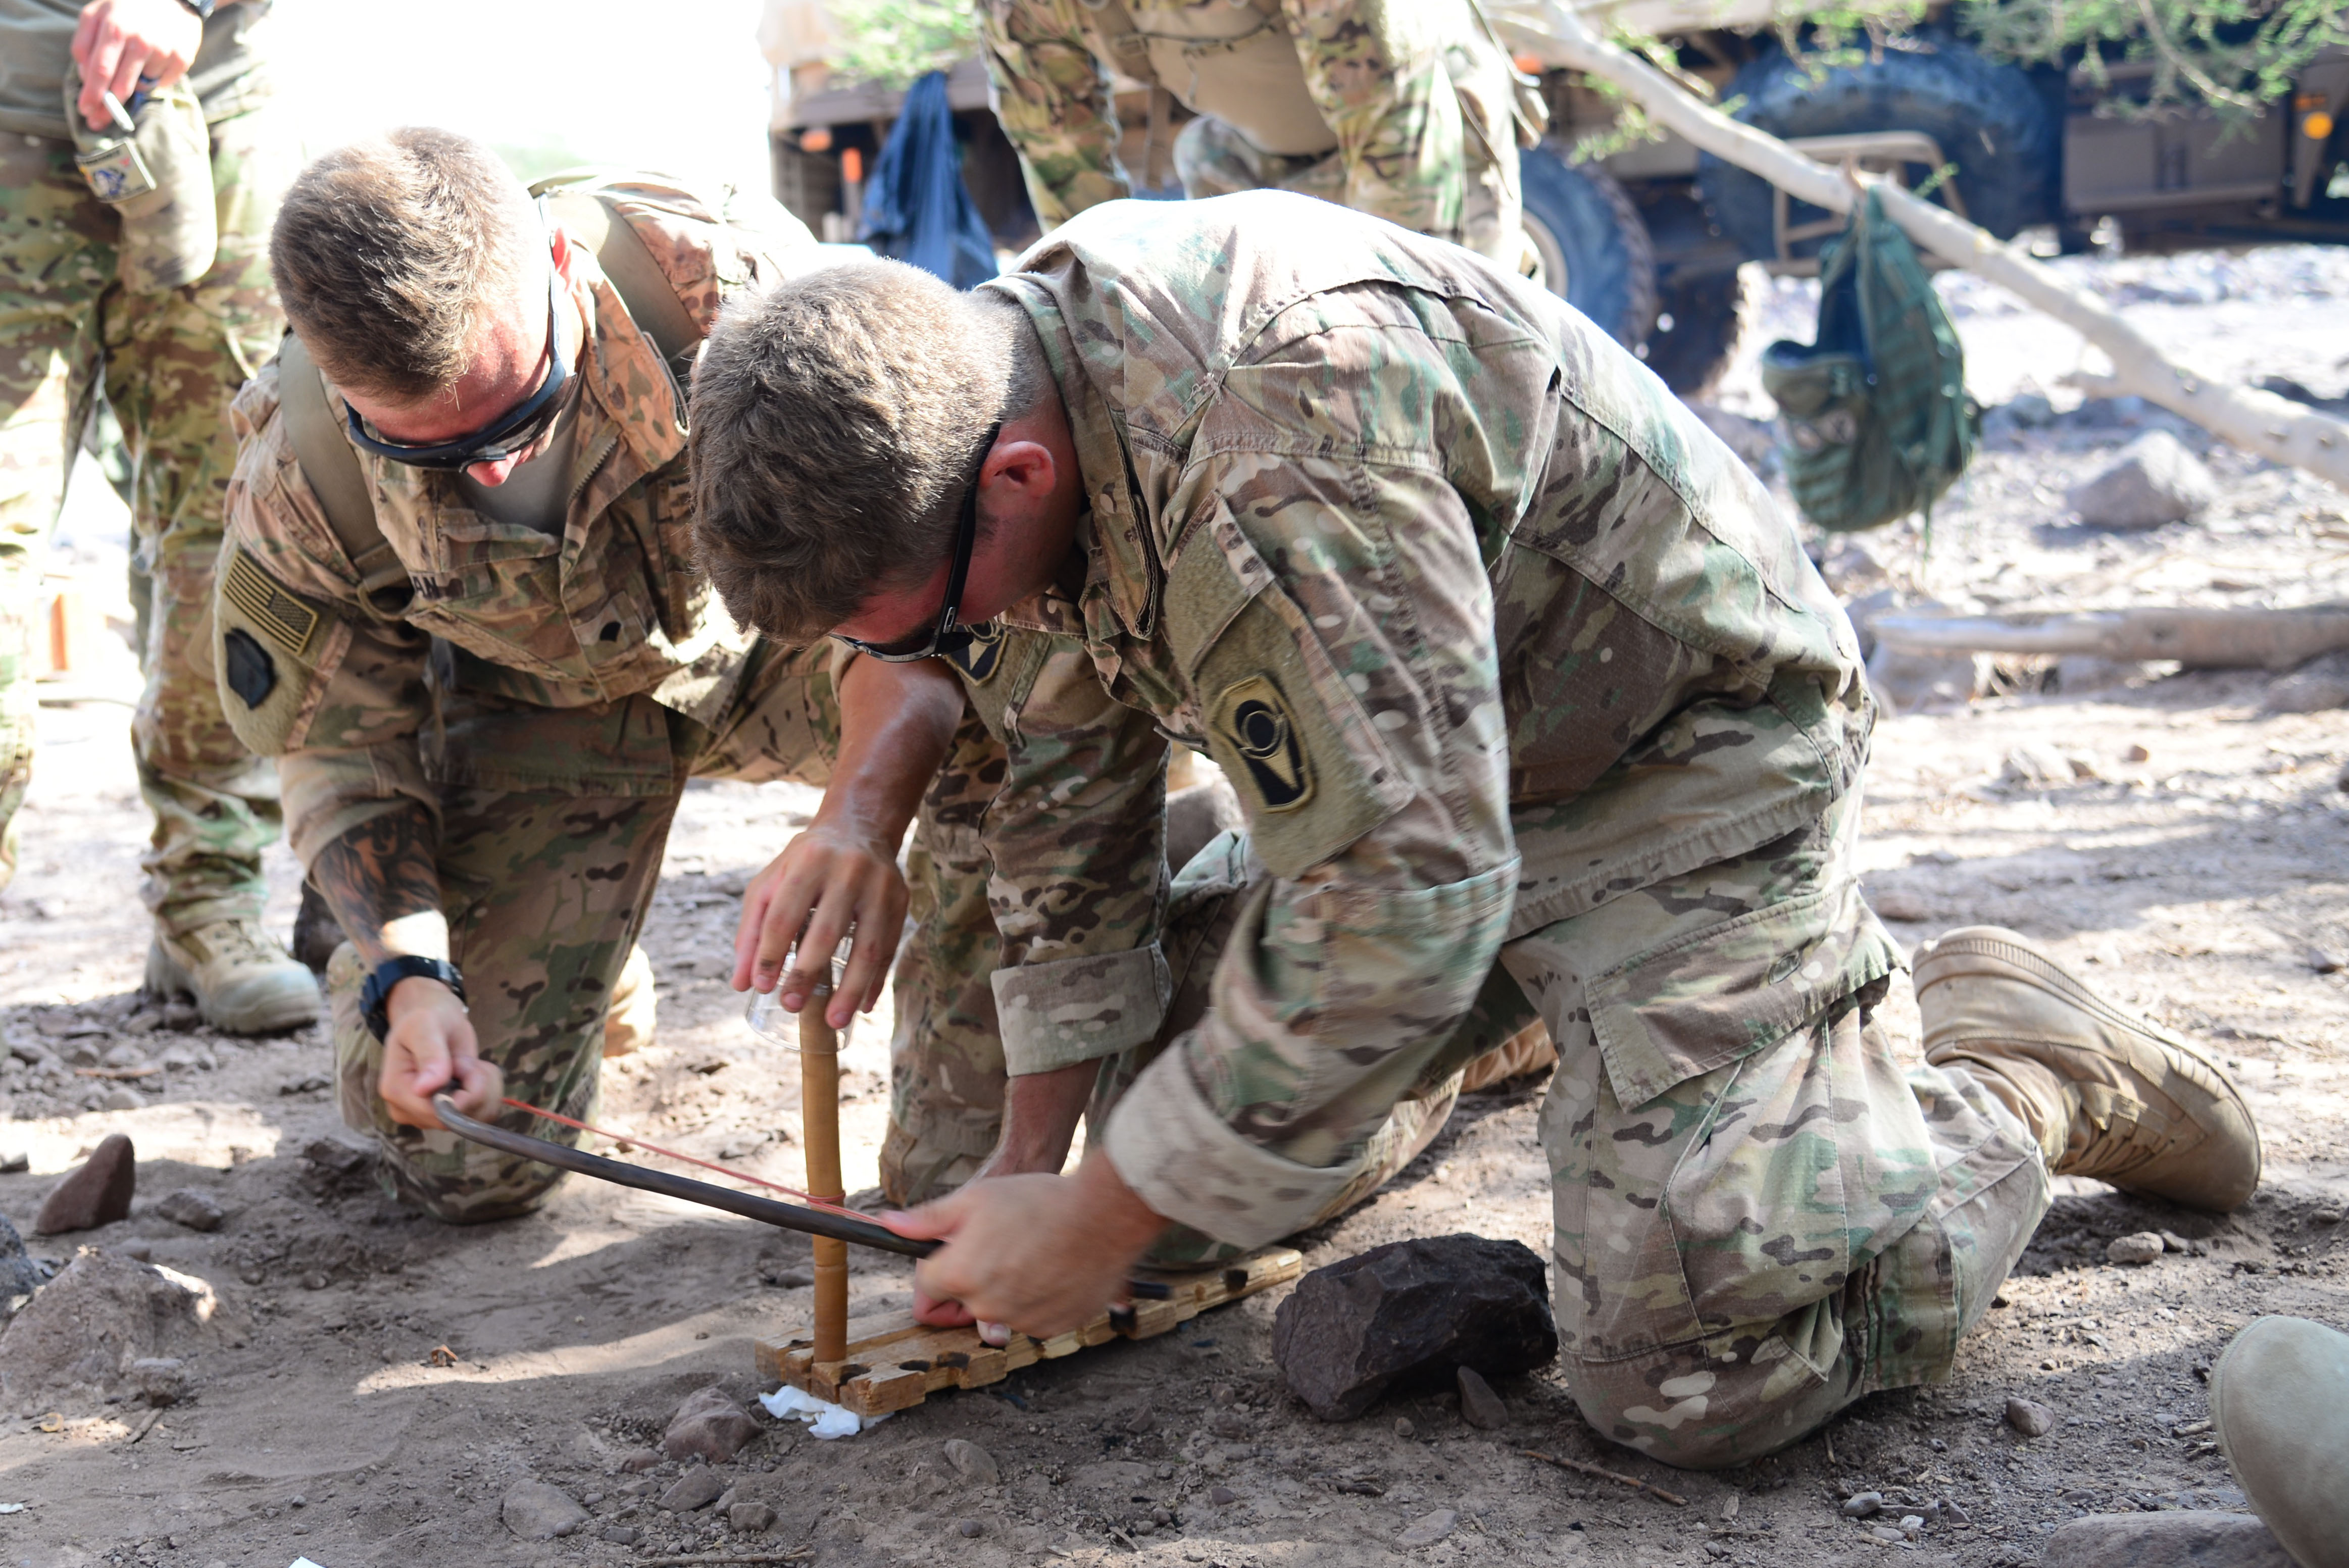 U.S. Army Spc. Zach Dean, left, and Jacob Currie, 2nd Battalion, 124th Infantry Regiment, use a stick, bow and paper to make a fire during the French Desert Survival Course, May 5, 2016 at Arta Plage, Djibouti. During the course, U.S. forces also learned how to make fire from mundane items like batteries, flint, bullets and steel wool. (U.S. Air Force photo by Senior Airman Benjamin Raughton/Released)